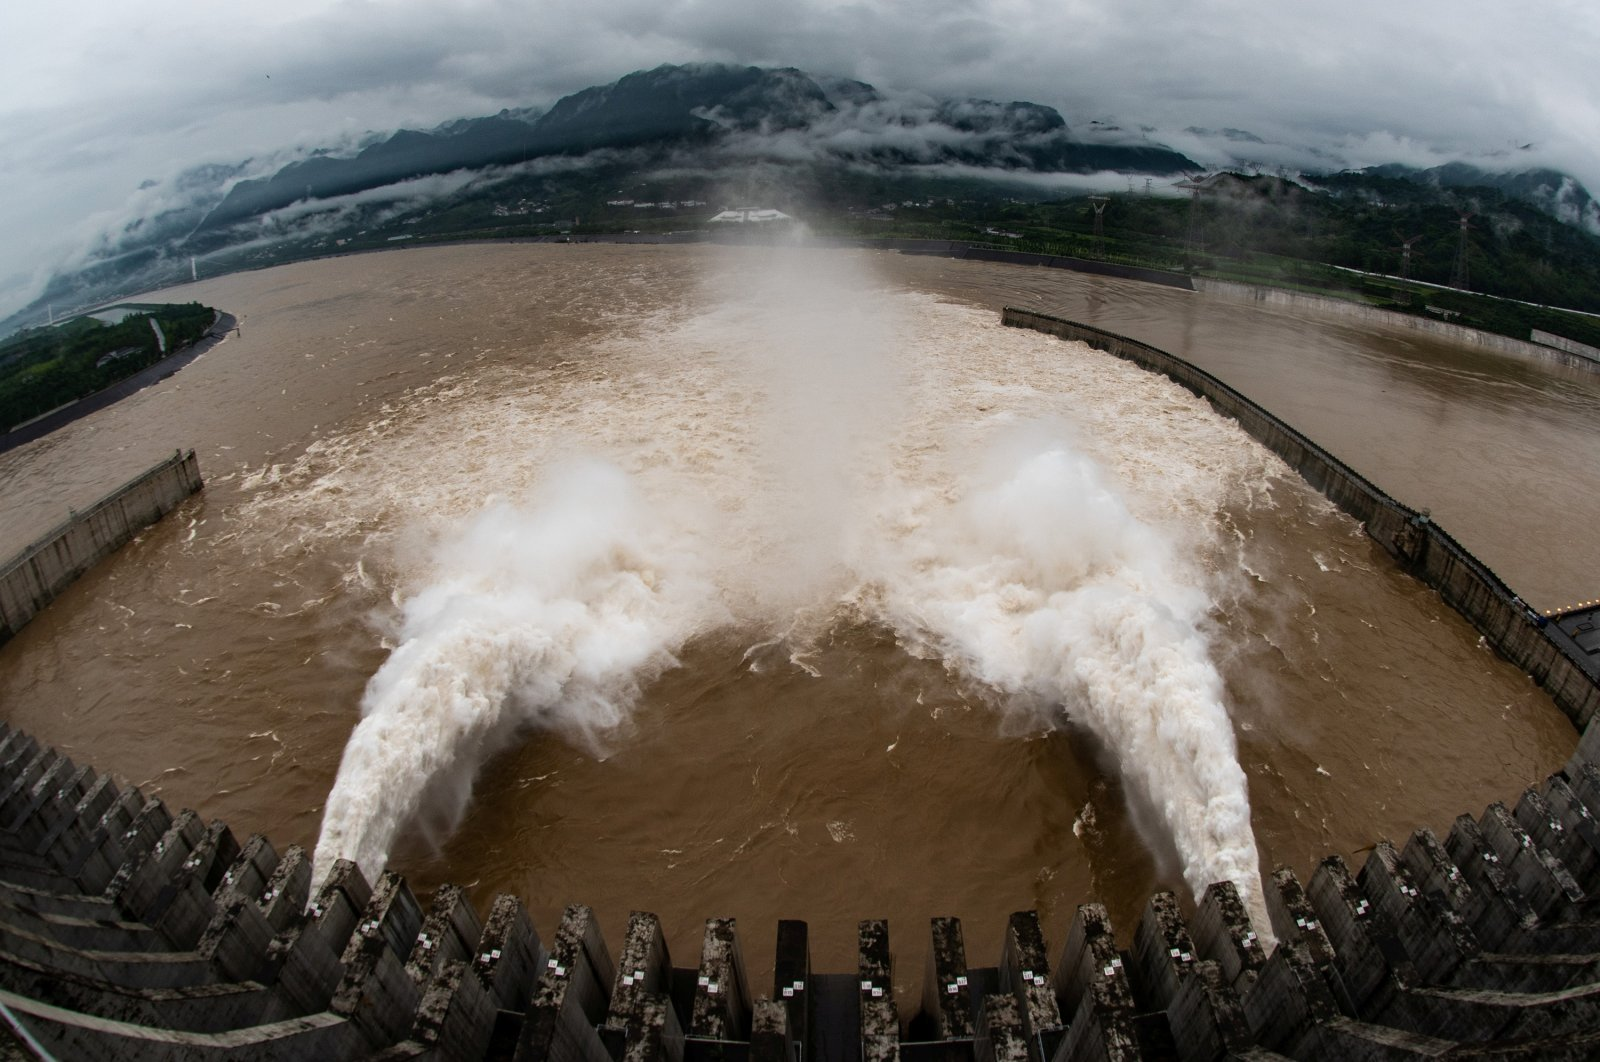 The Three Gorges Dam on the Yangtze River discharges water to lower the water level in the reservoir following heavy rainfall and floods in a few regions, in Yichang, Hubei province, China, July 17, 2020. (China Daily via Reuters)